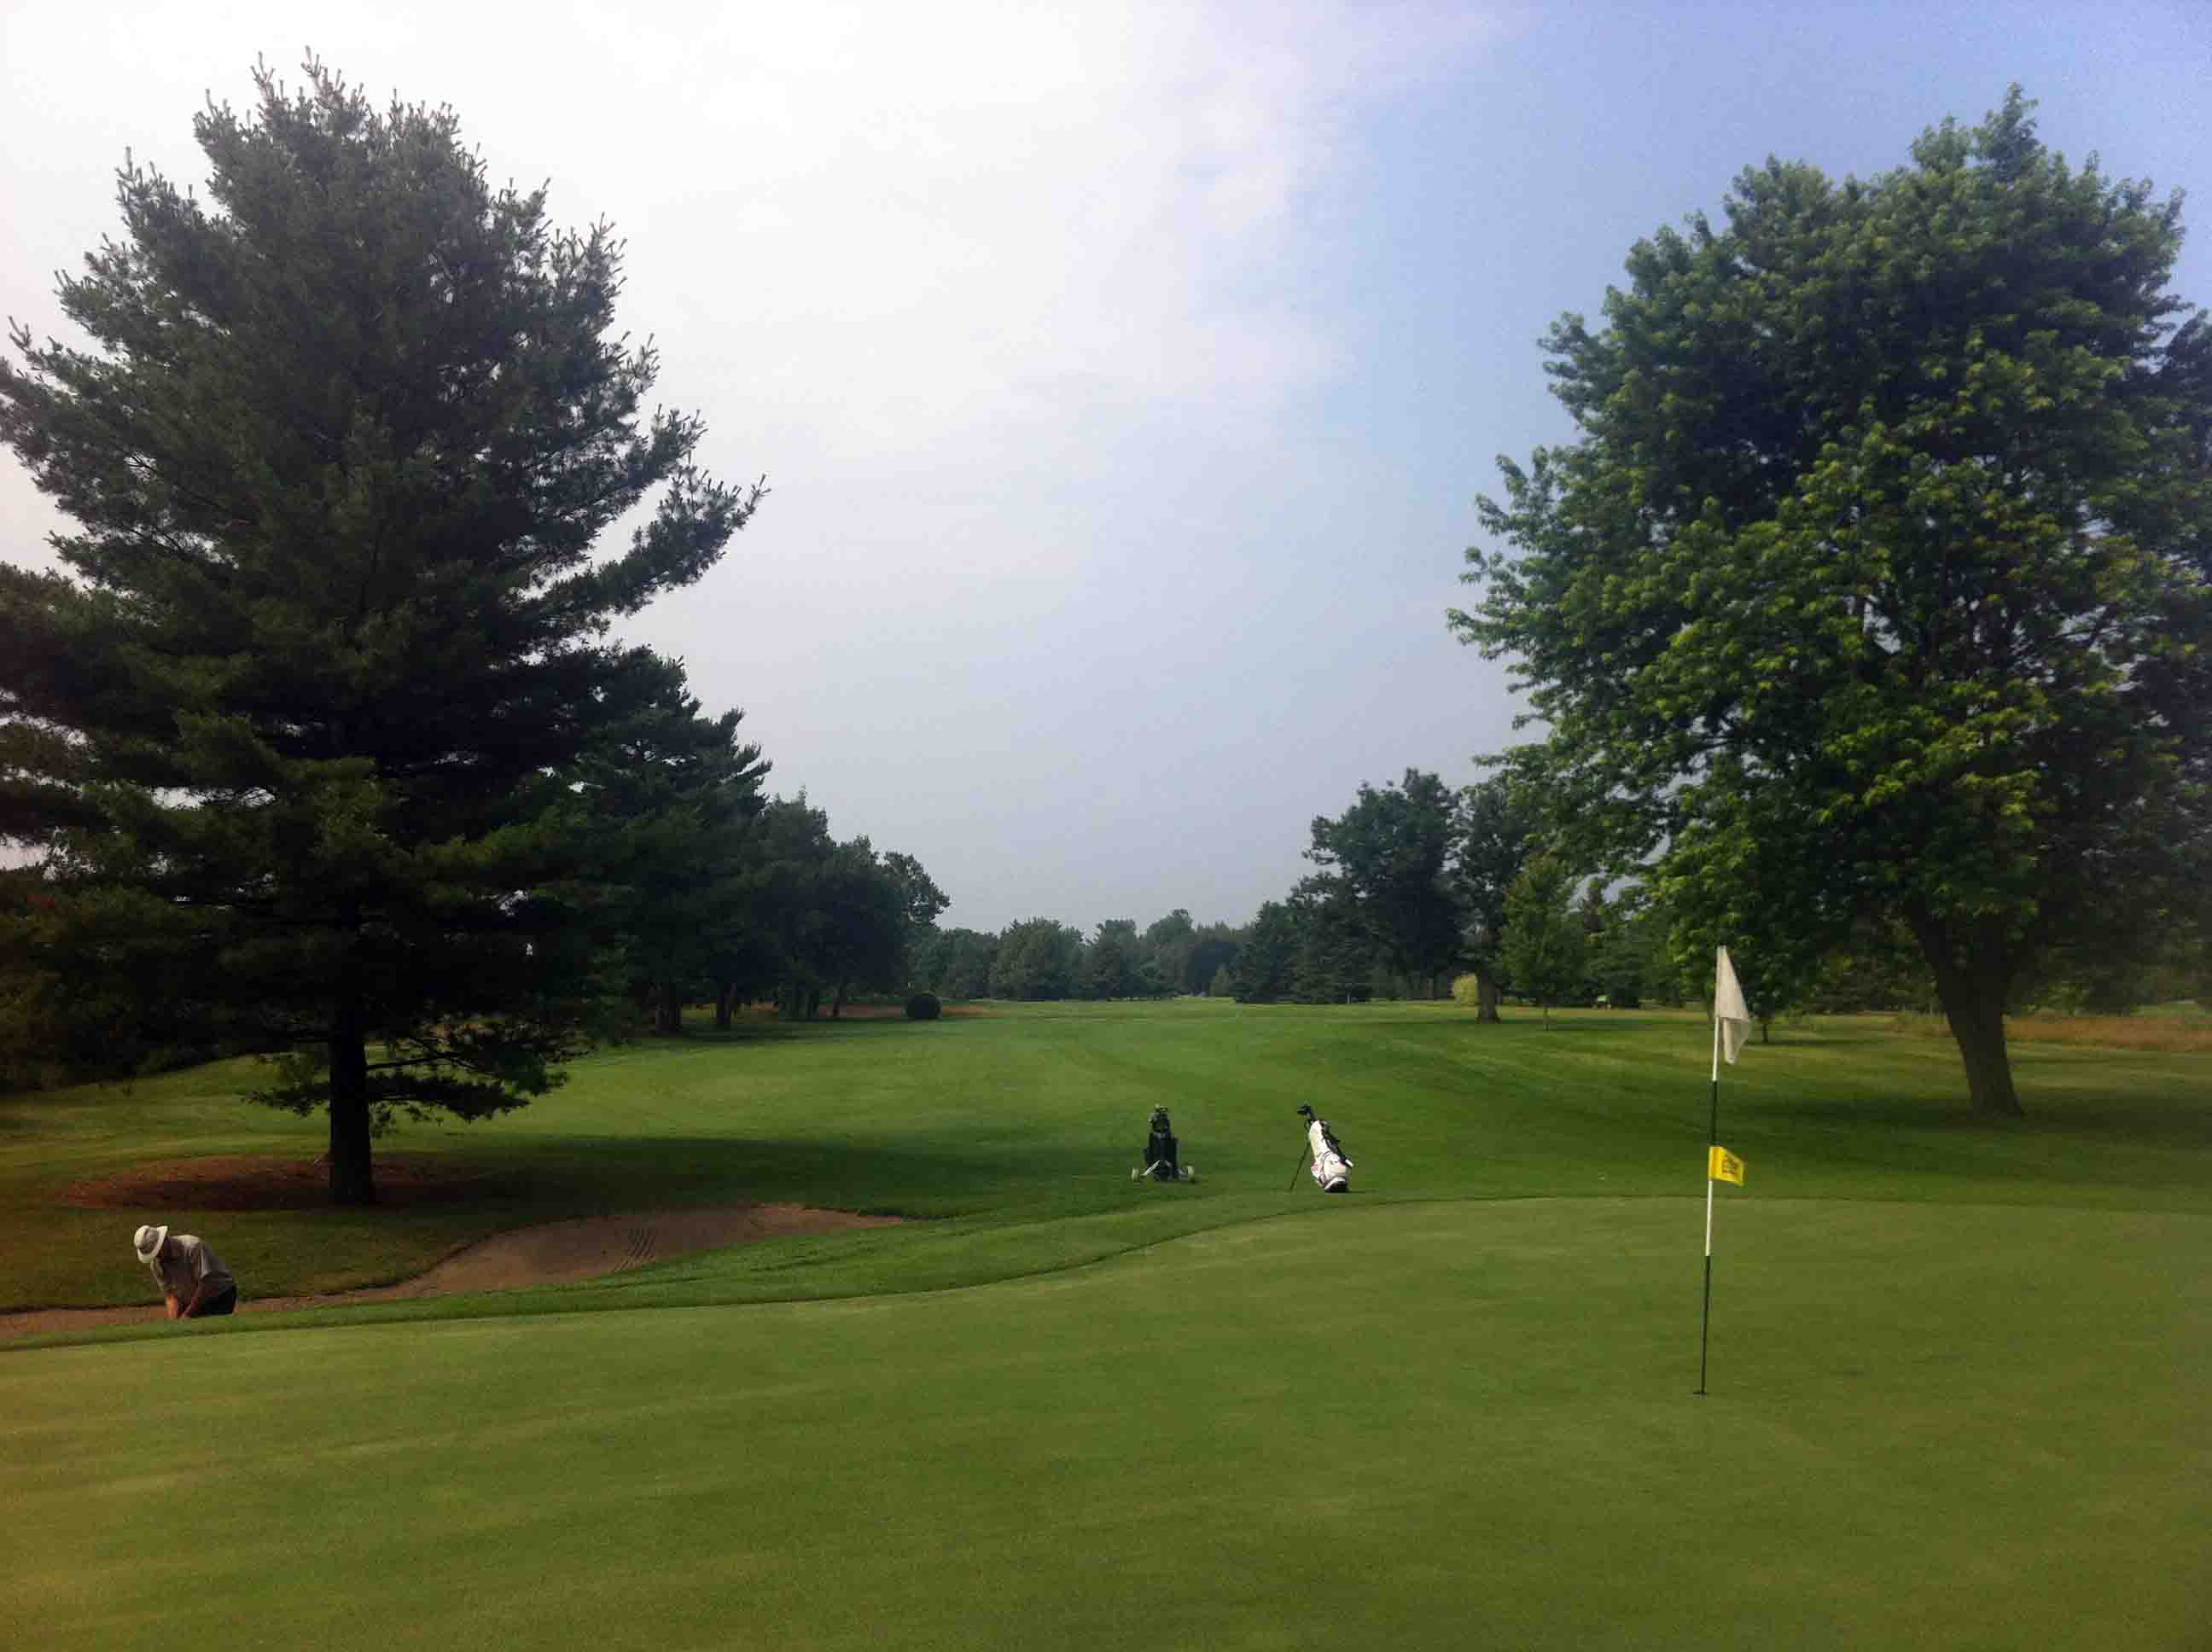 Day on the Links at Sturgeon Point Golf Club, Ontario